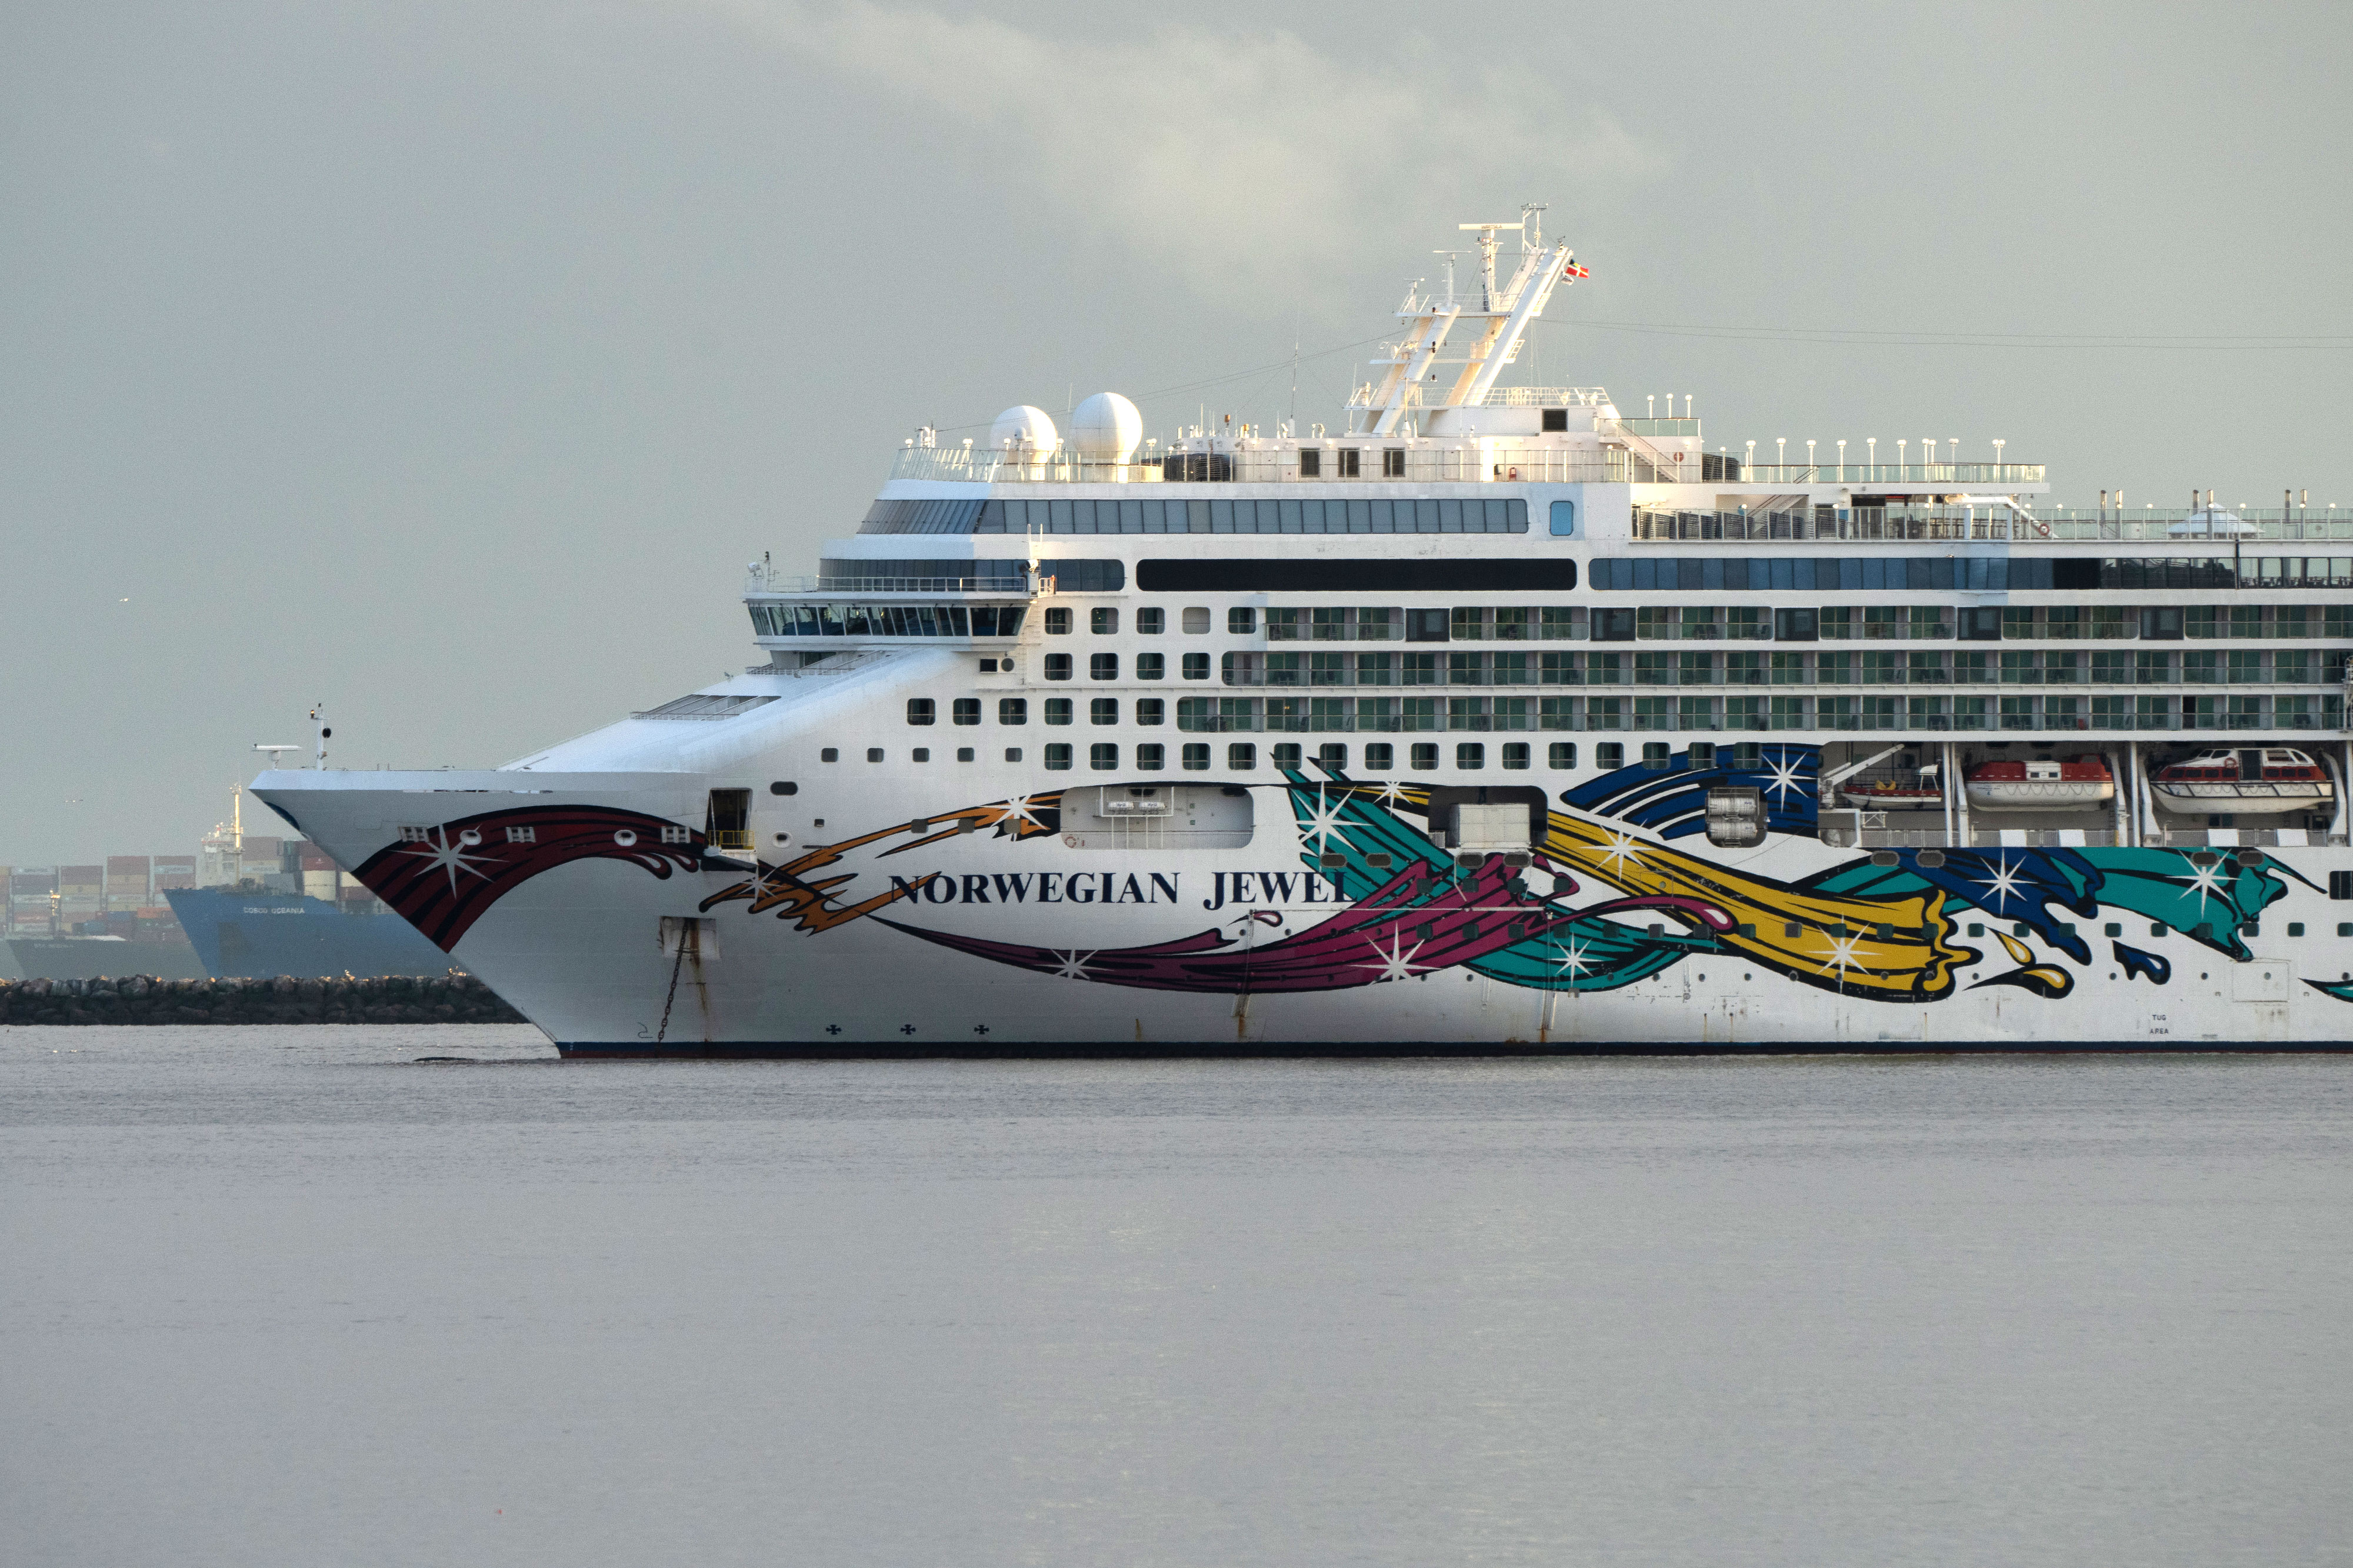 The Norwegian Jewel cruise ship, operated by Norwegian Cruise Line, is moored near the Port of Long Beach in California on January 29.